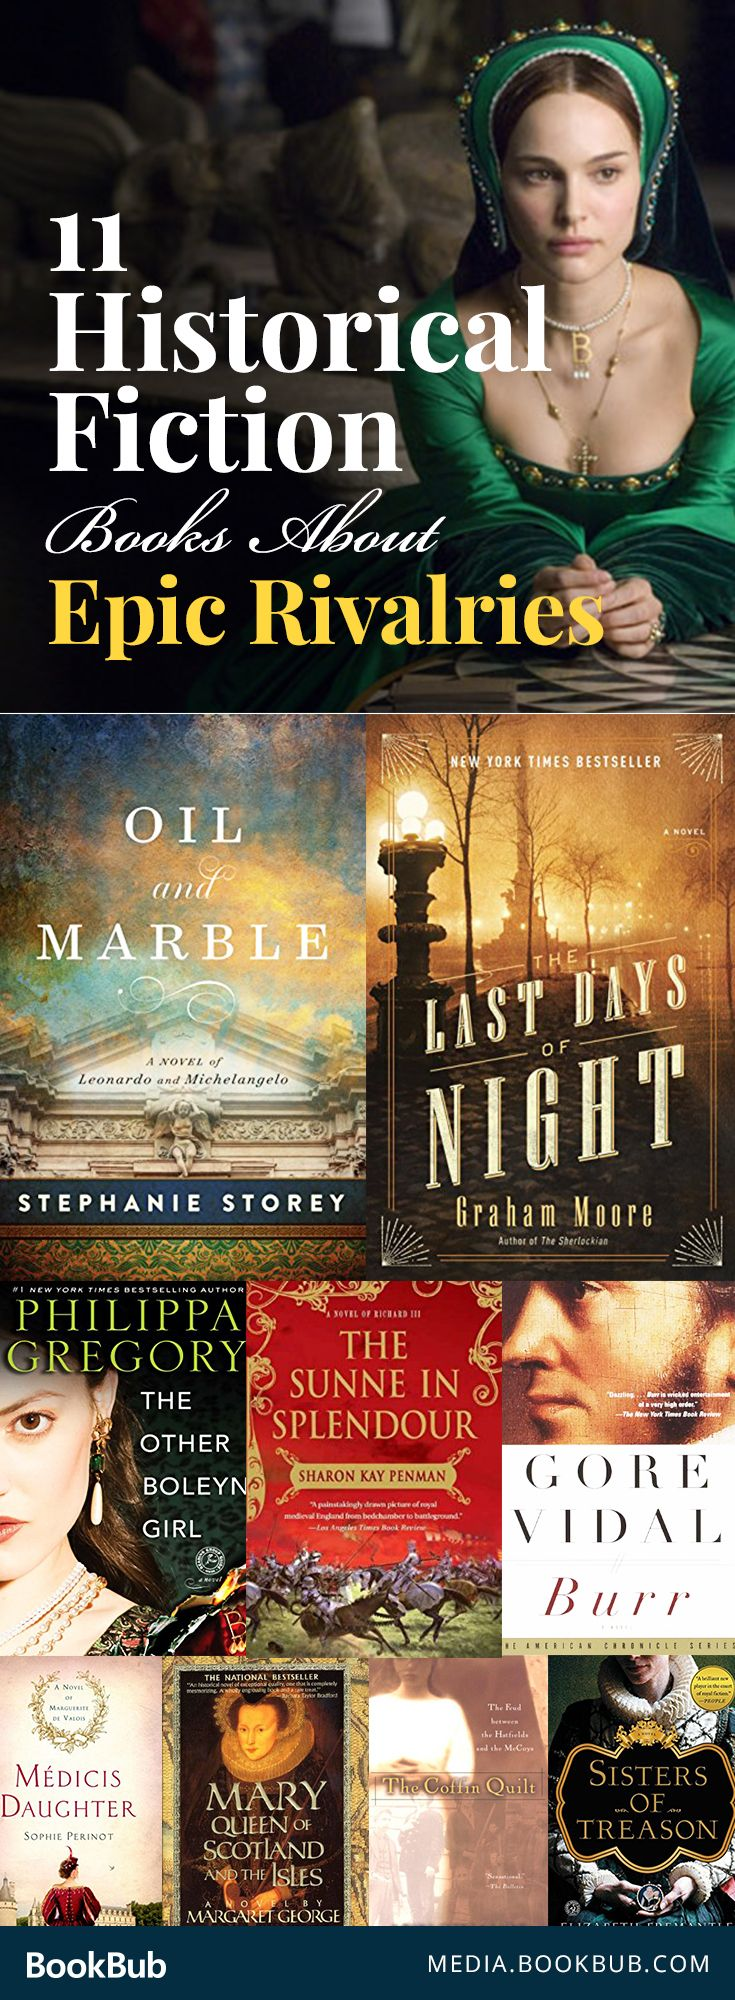 11 Historical Fiction Books About Epic Rivalries